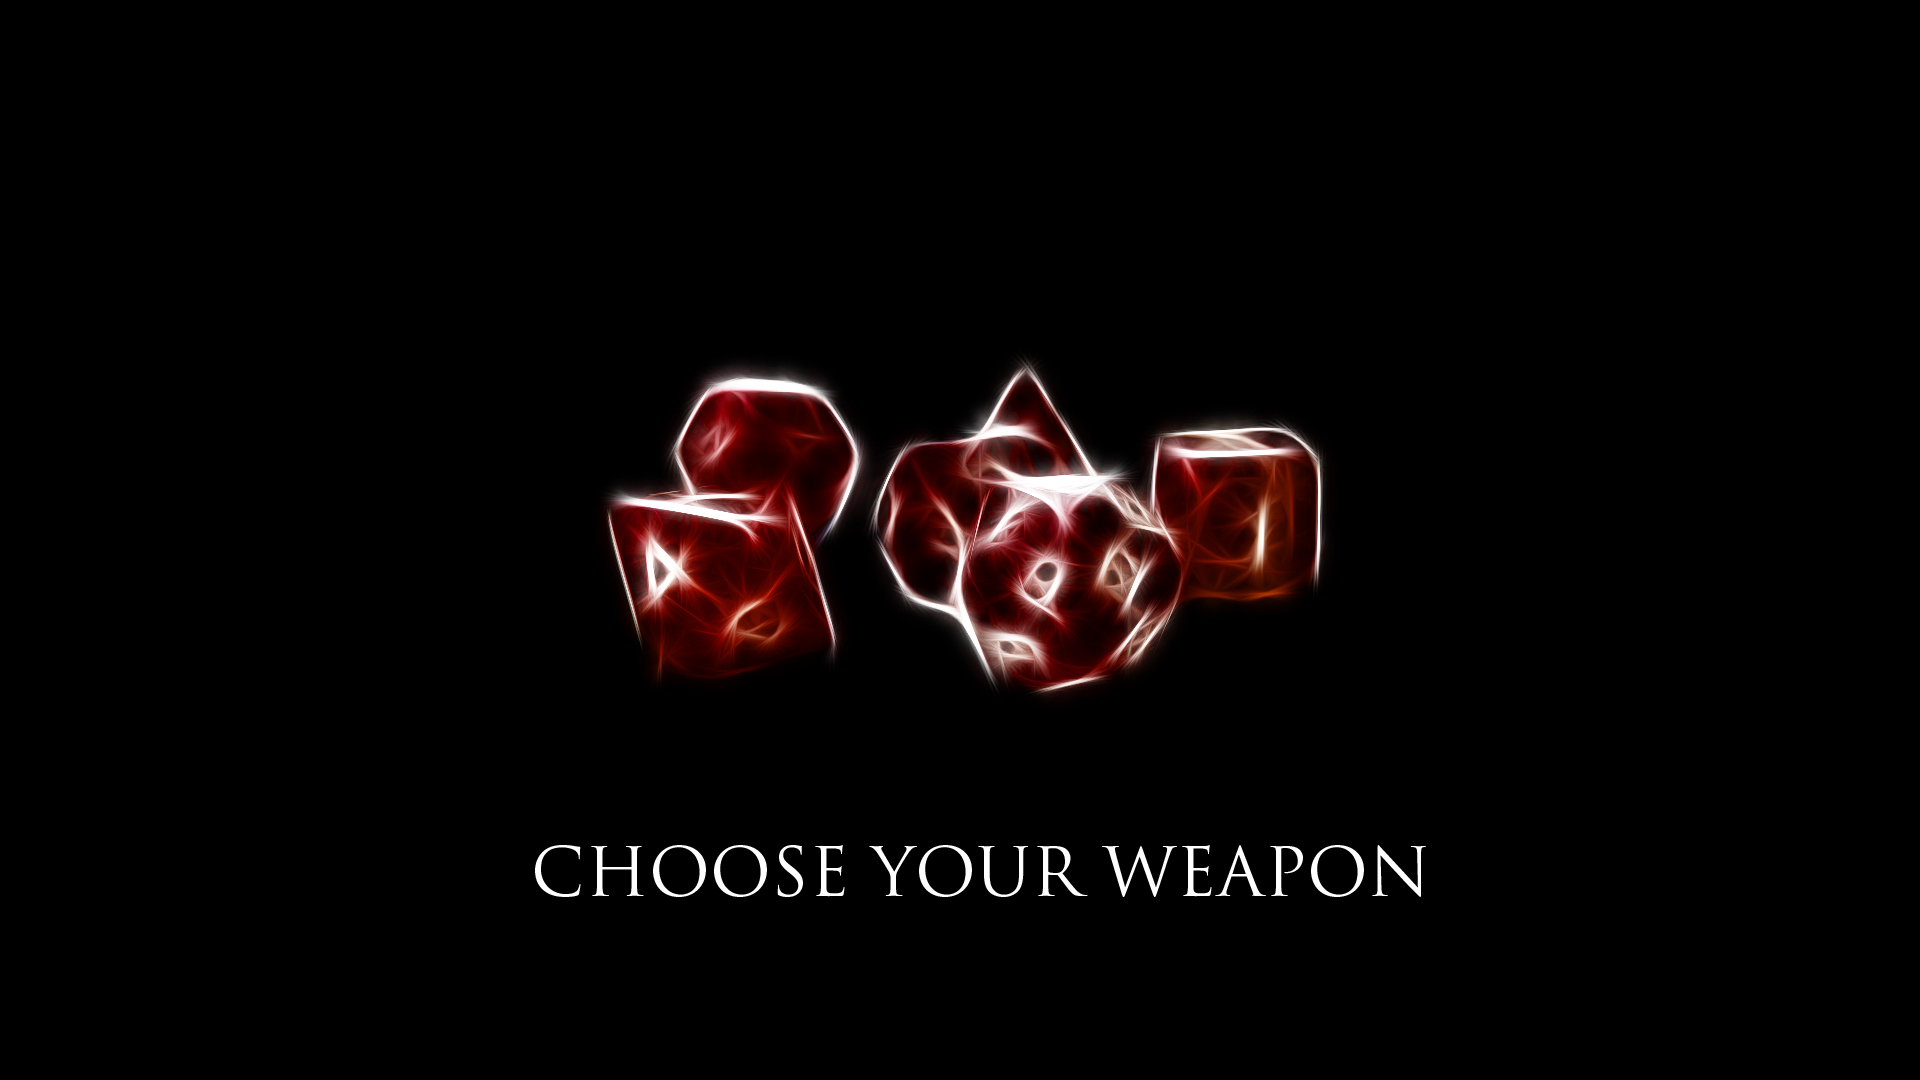 Choose Your Weapon 1920x1080 HD Wallpaper By TheRierie On